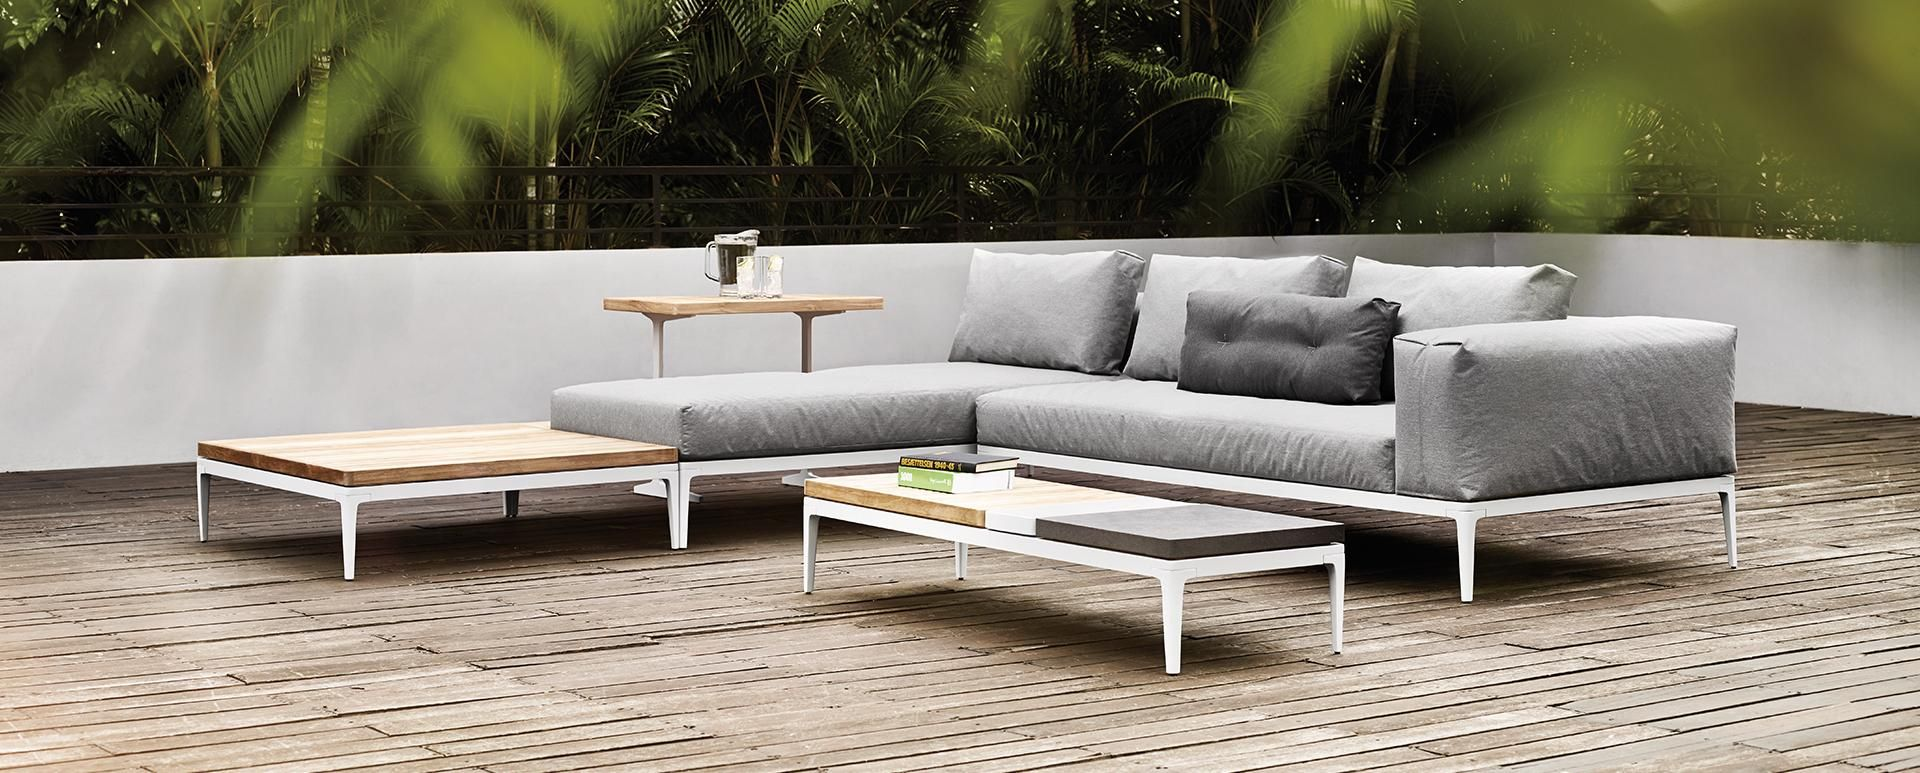 Should You Buy Low End Big Box Retailer Patio Furniture Or High End Quality  Patio